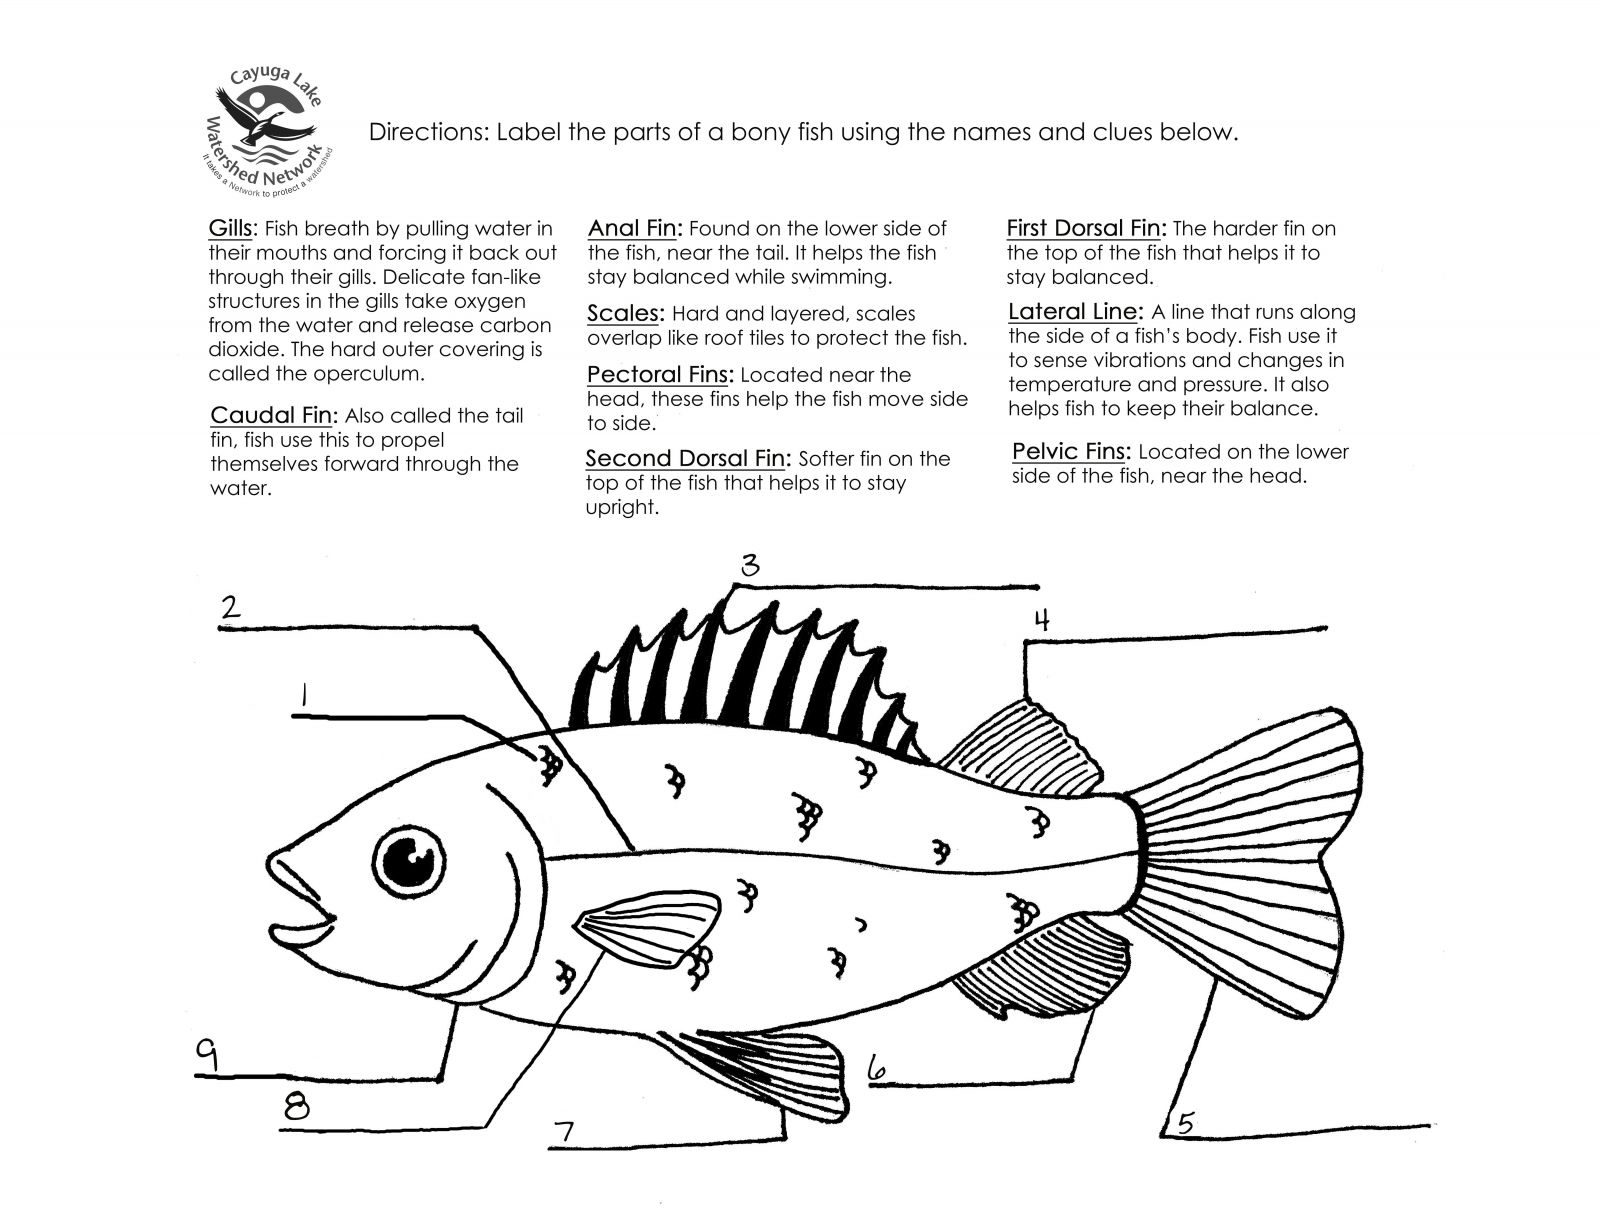 Bony Fish Anatomy Worksheet Images \u0026 Pictures - Becuo   Fish anatomy [ 1230 x 1600 Pixel ]